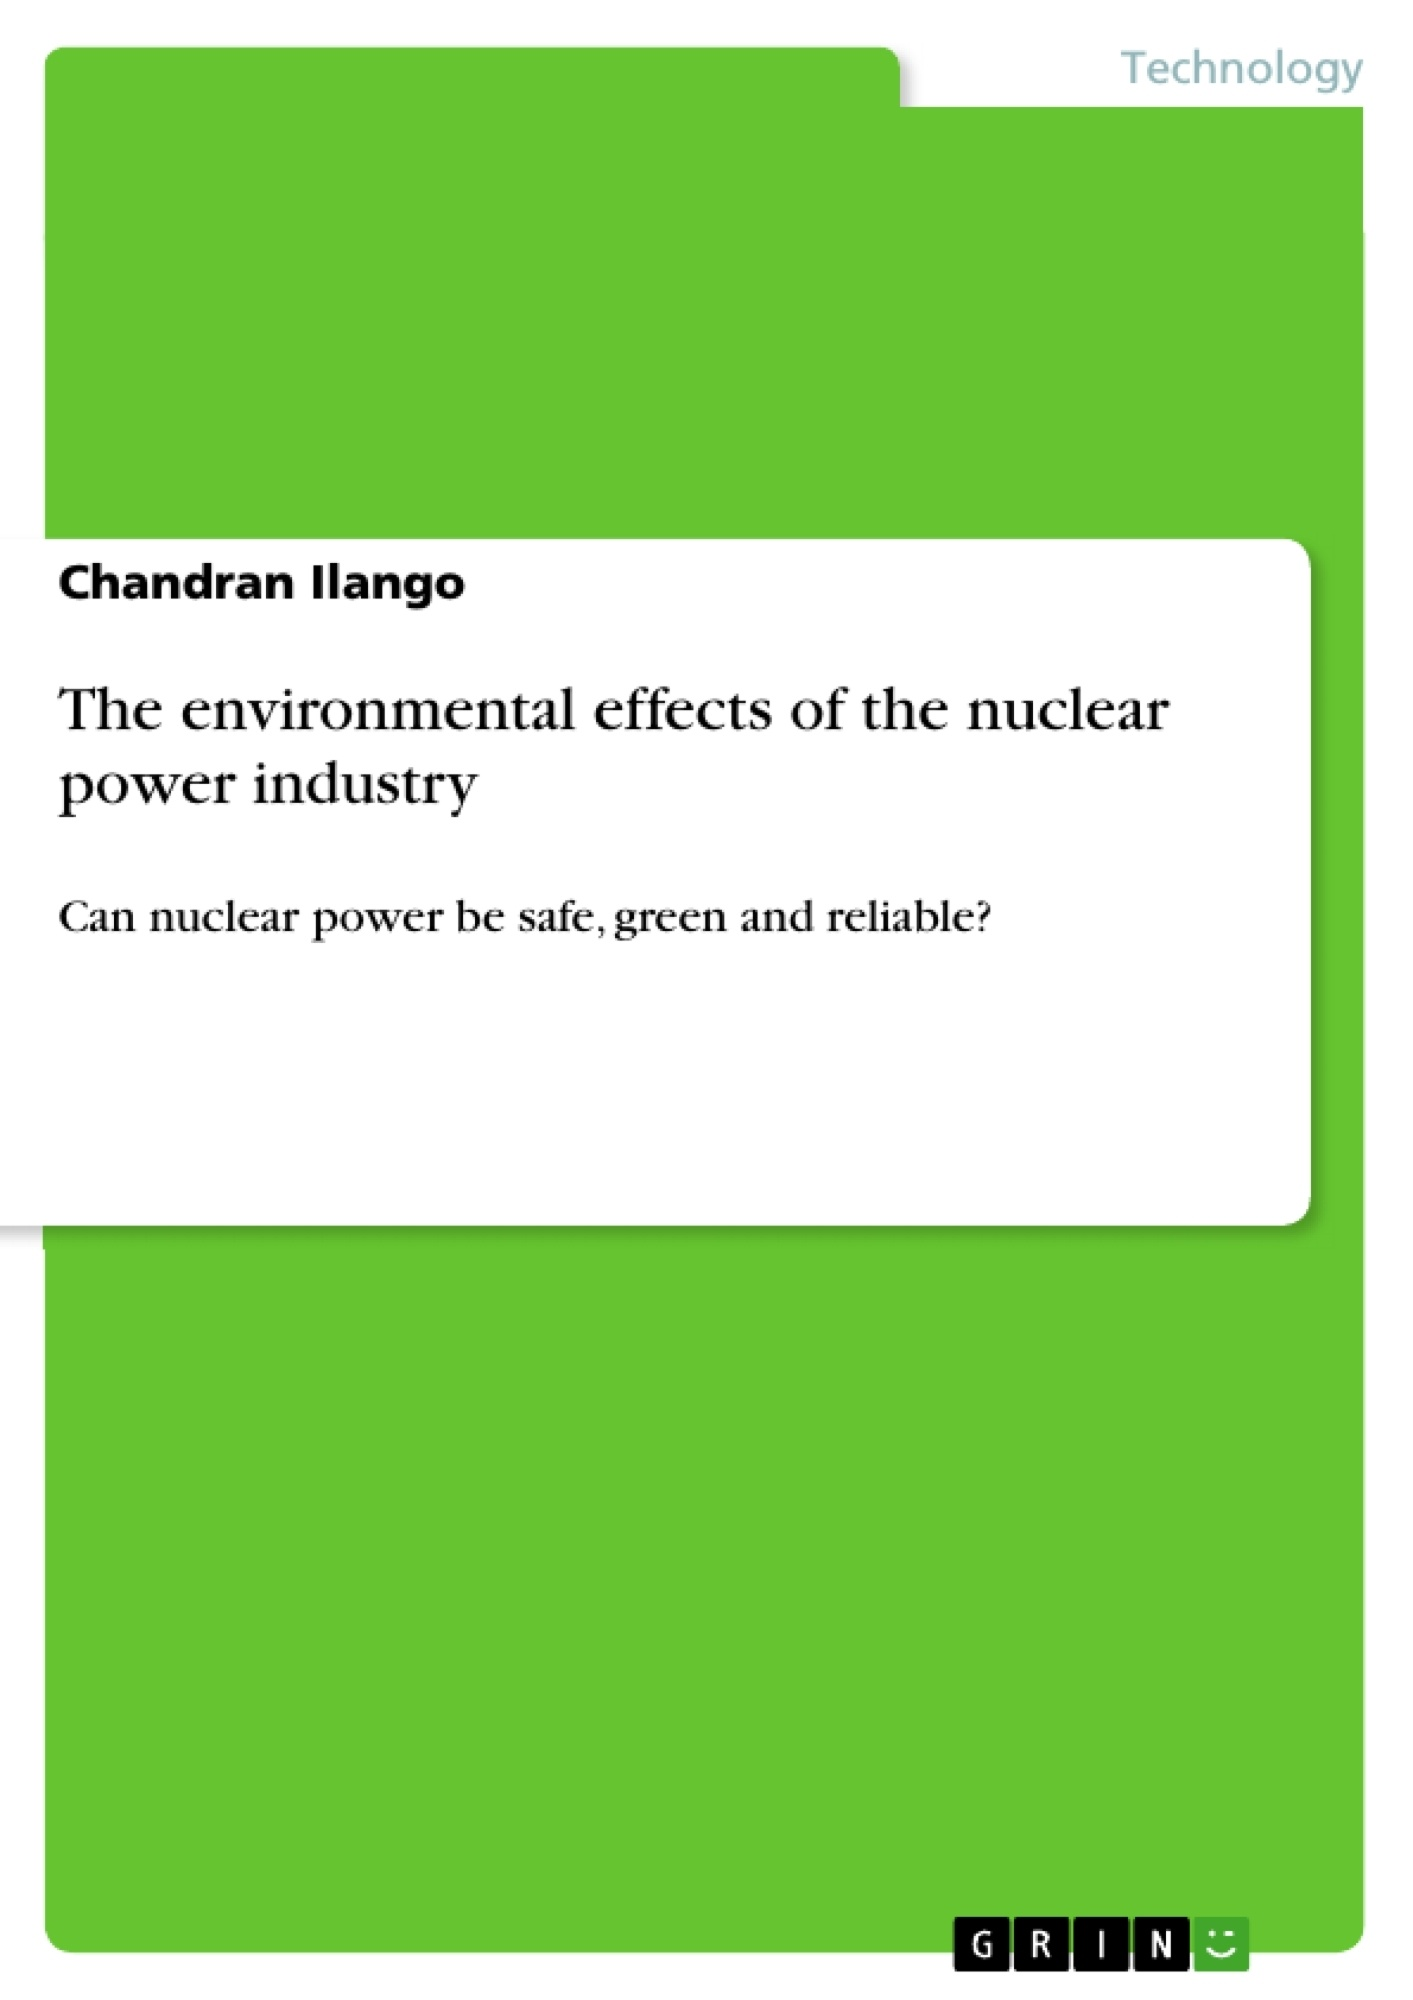 Title: The environmental effects of the nuclear power industry